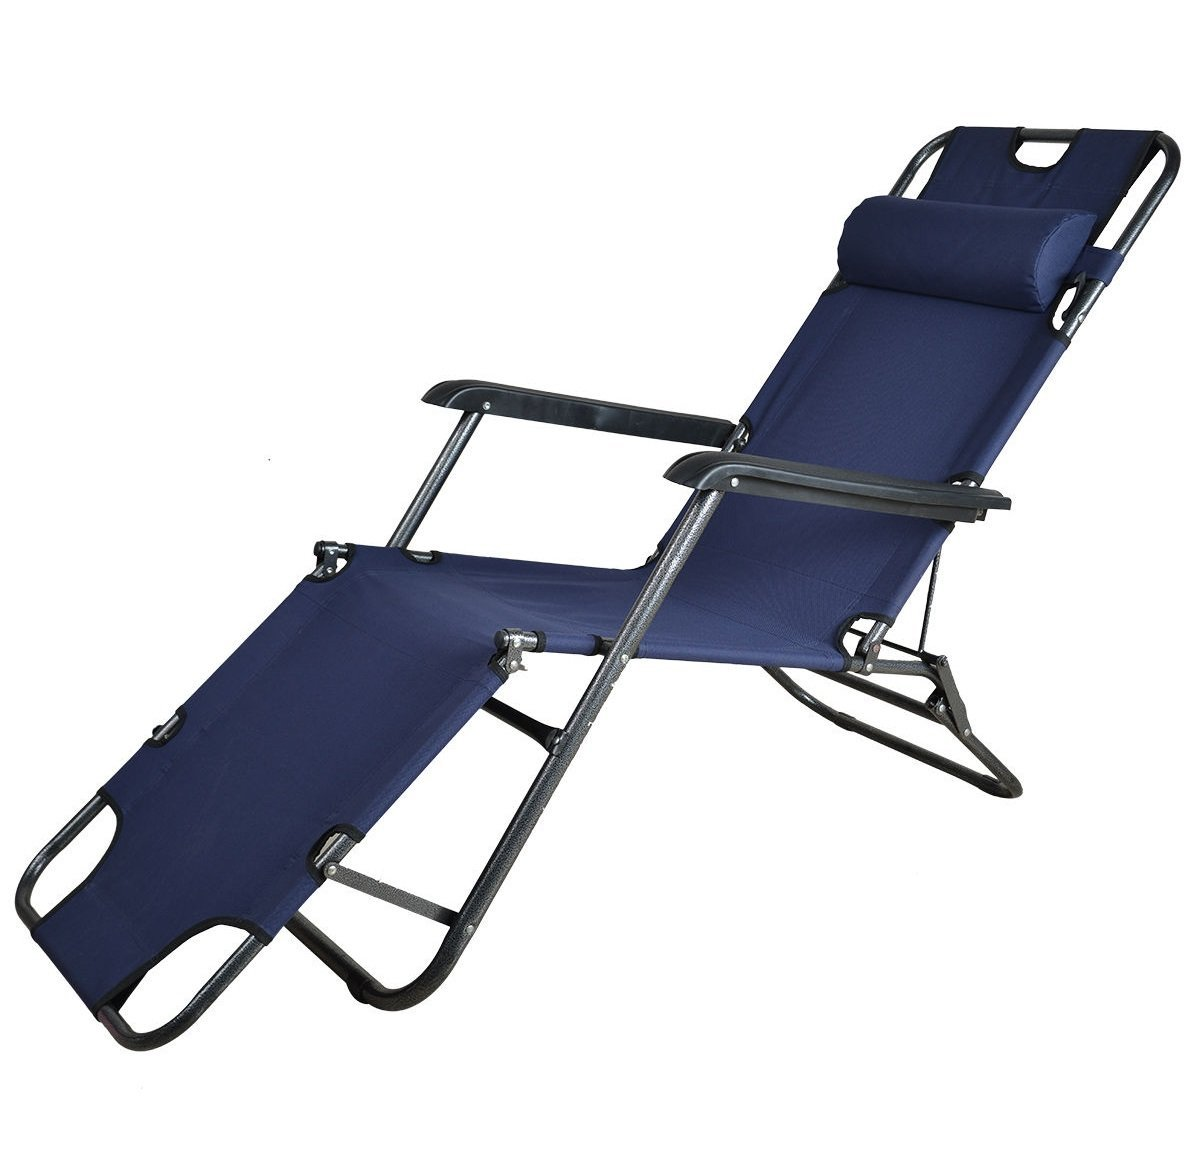 Kawachi Easy Folding Comfort Reclining Chair-Dark Blue Amazon.in Home u0026 Kitchen  sc 1 st  Amazon India & Kawachi Easy Folding Comfort Reclining Chair-Dark Blue: Amazon.in ... islam-shia.org